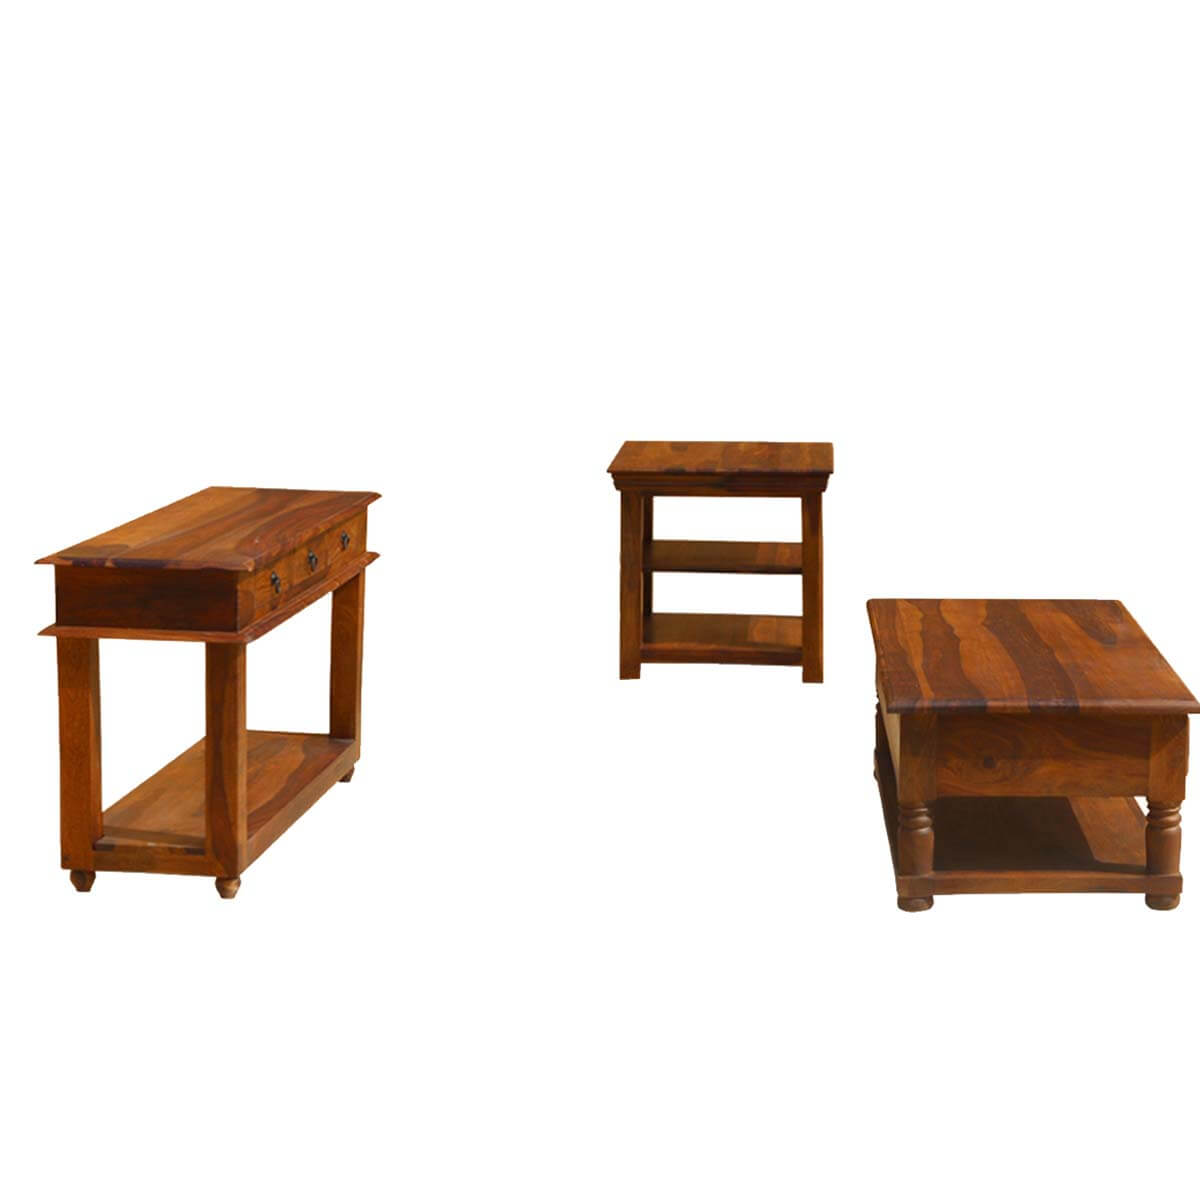 Early american solid wood console coffee accent table 3pc set Console coffee table